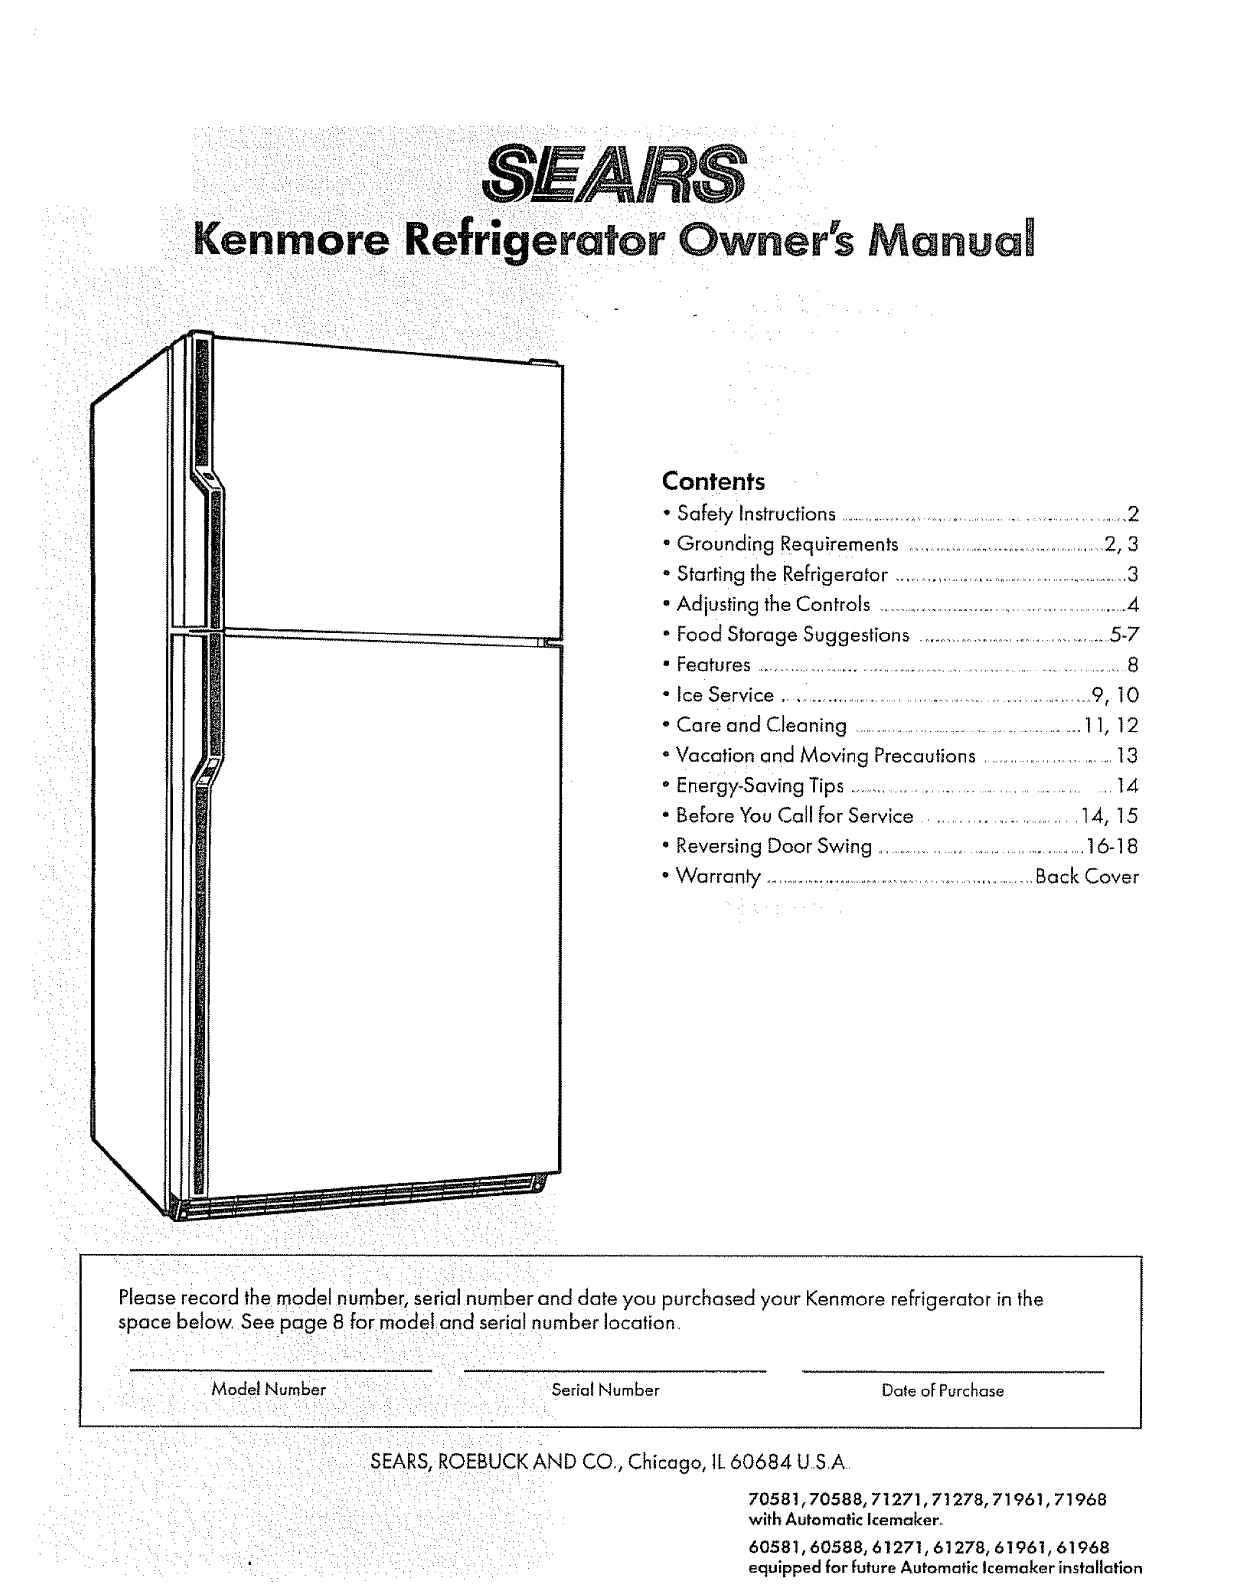 sears refrigerator 61271 user guide manualsonline com Repair Manuals Whirlpool Microwave Manual